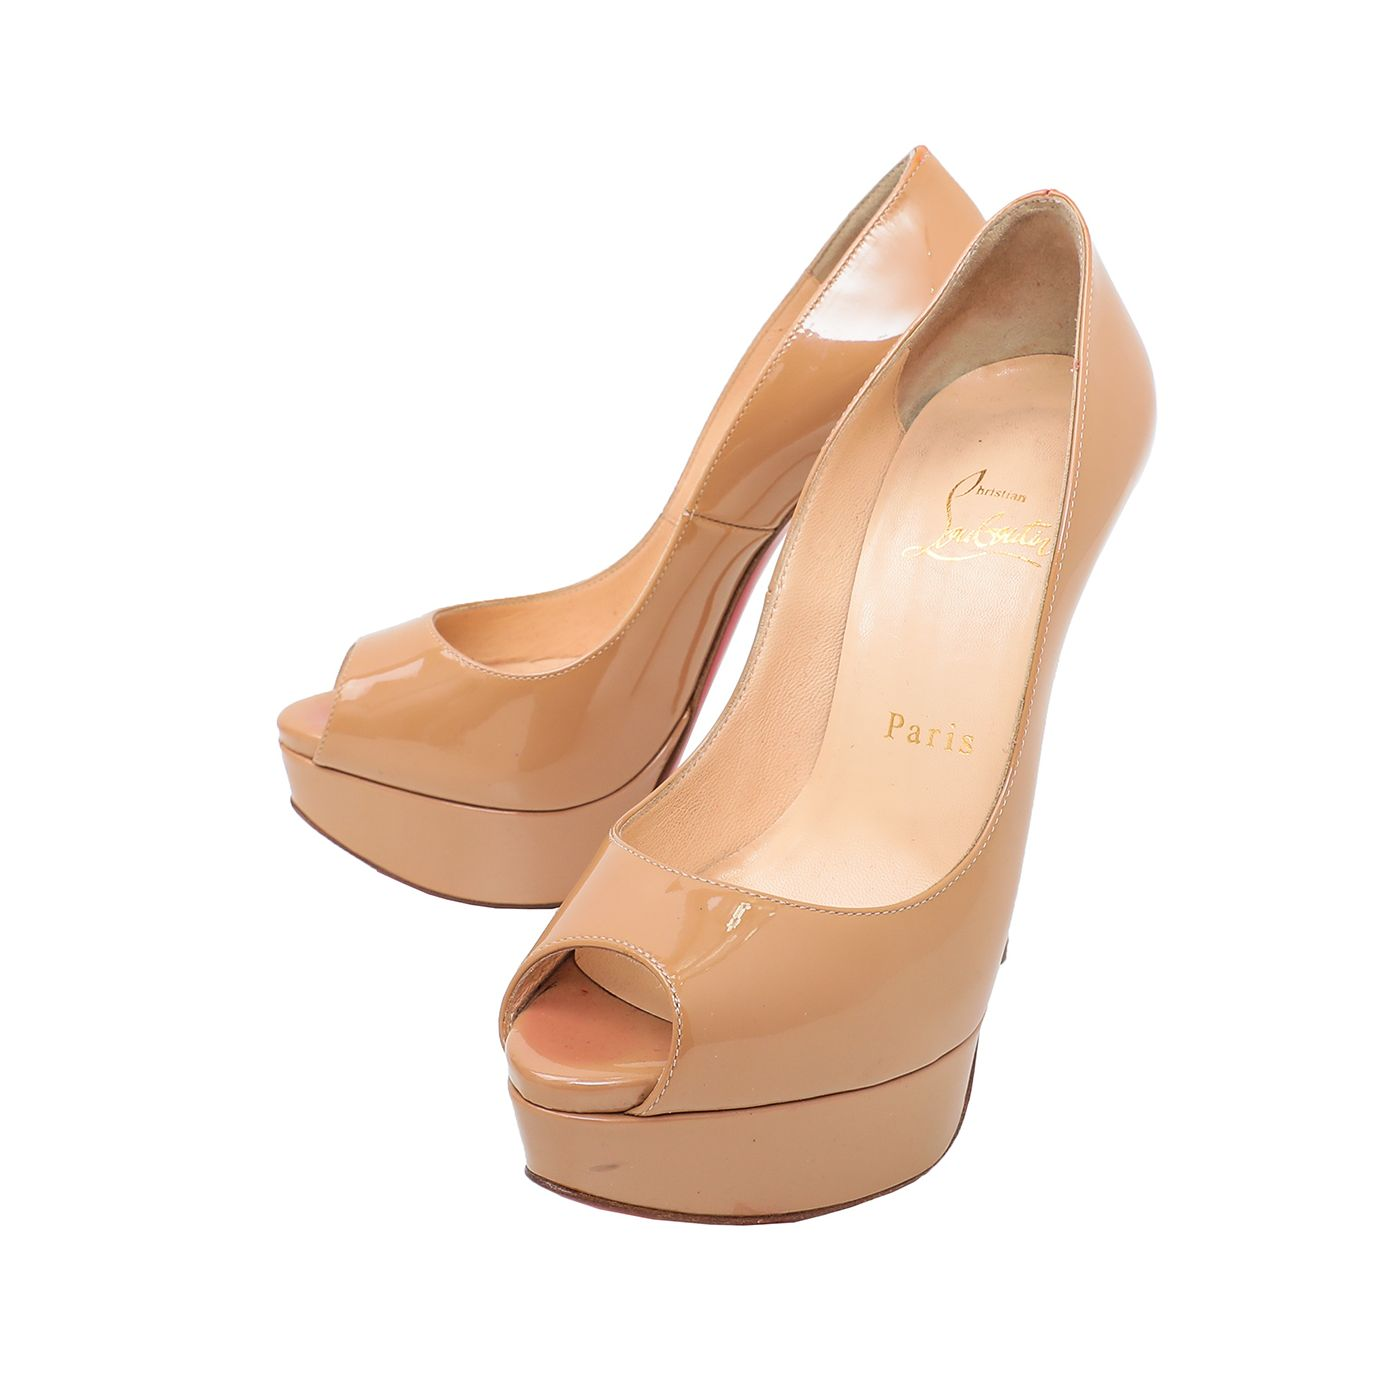 Christian Louboutin Nude Lady Peep 130mm Pumps 35.5